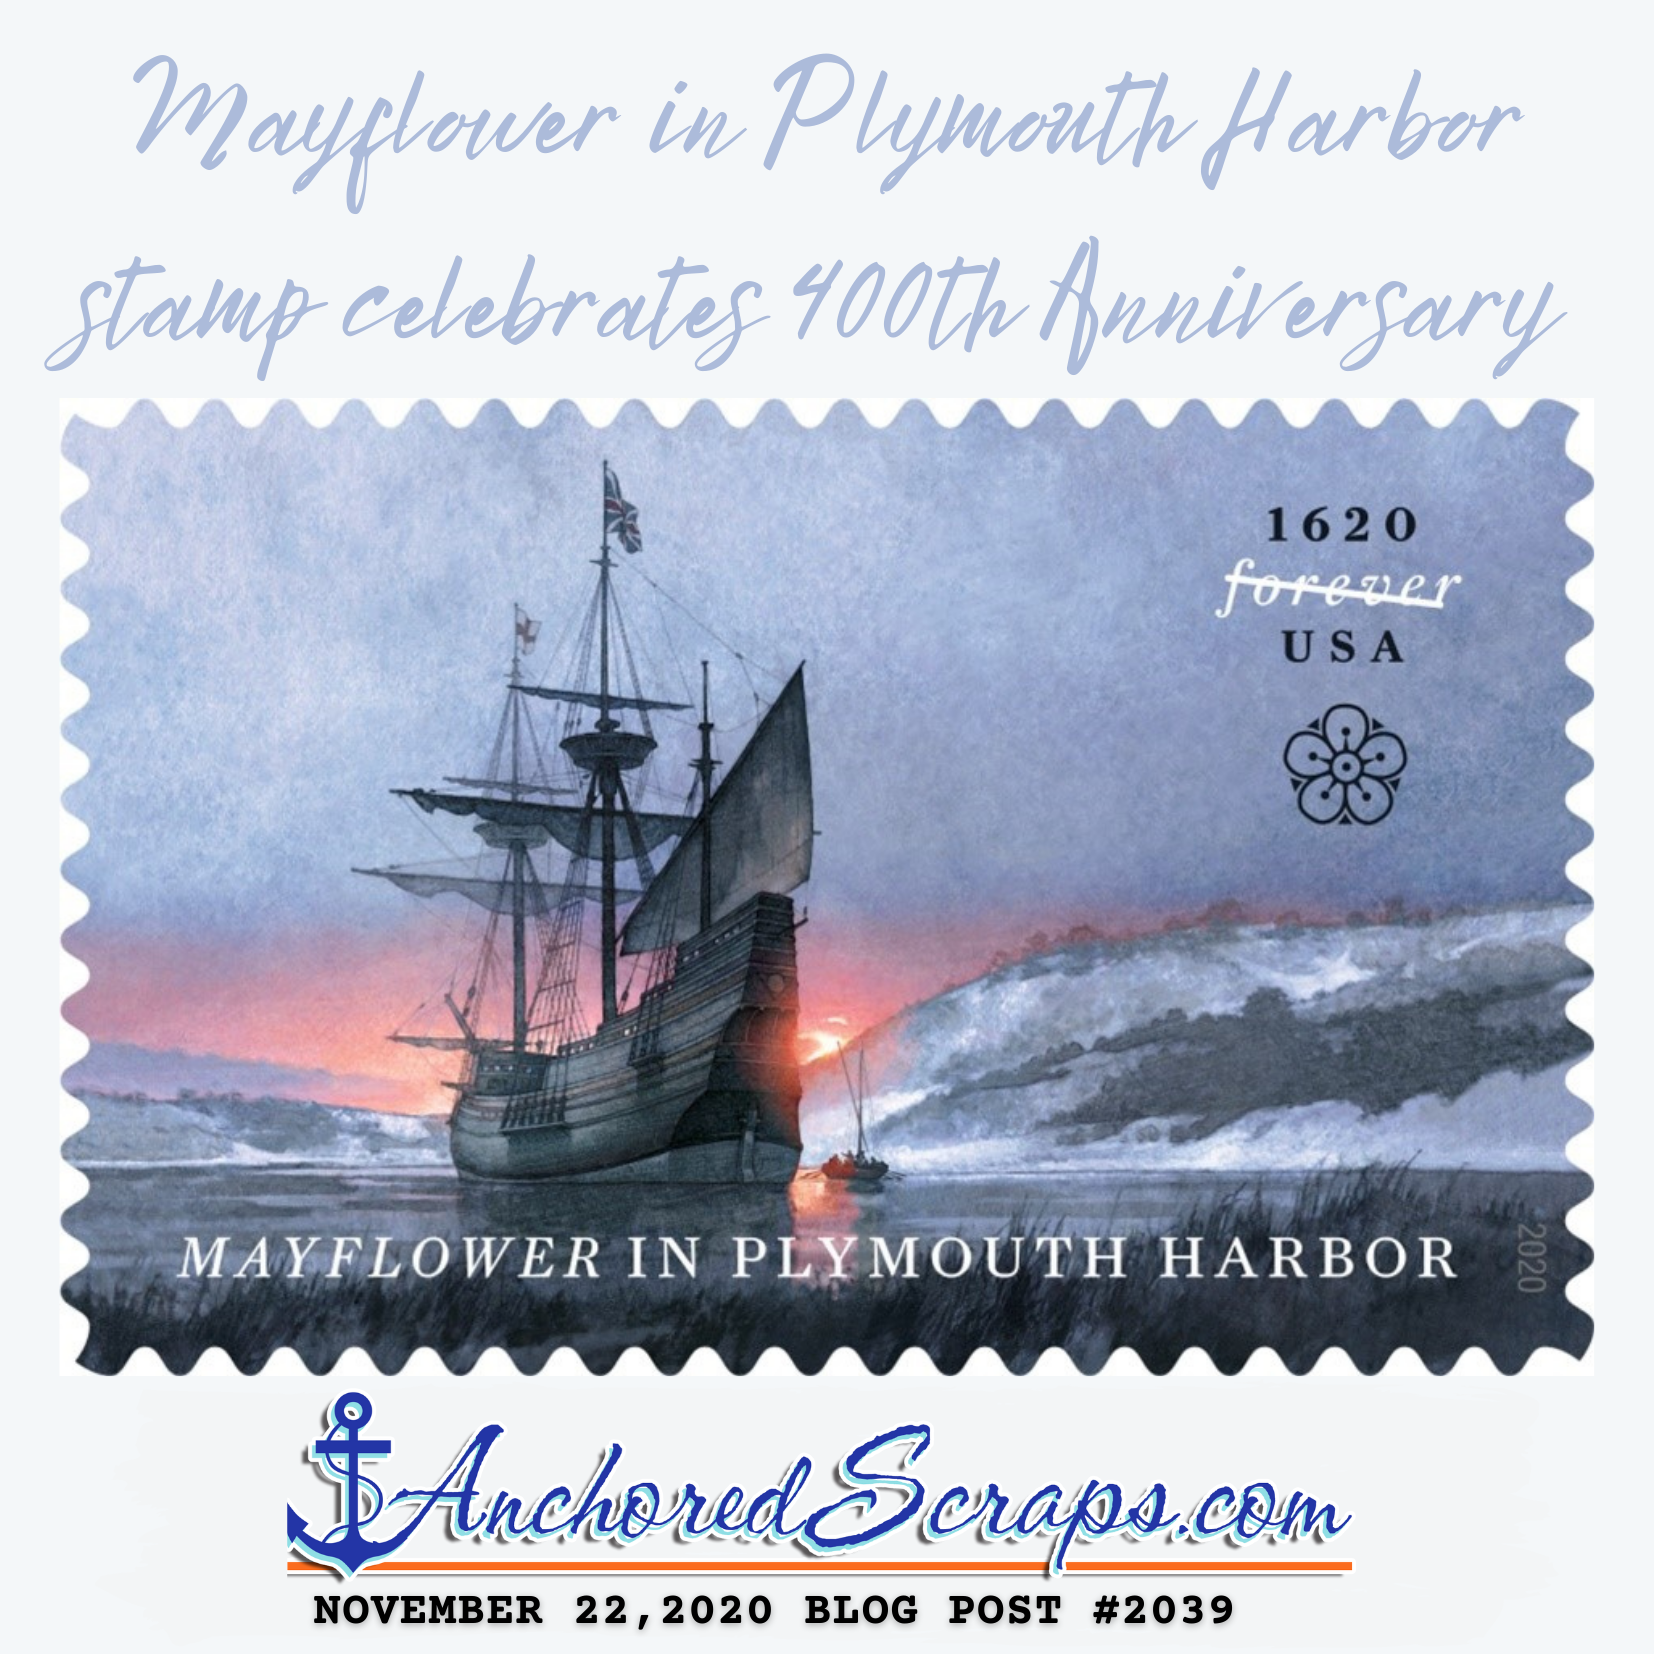 USPS Mayflower in Plymouth Harbor Forever Stamp celebrates 400th Anniversary #2039